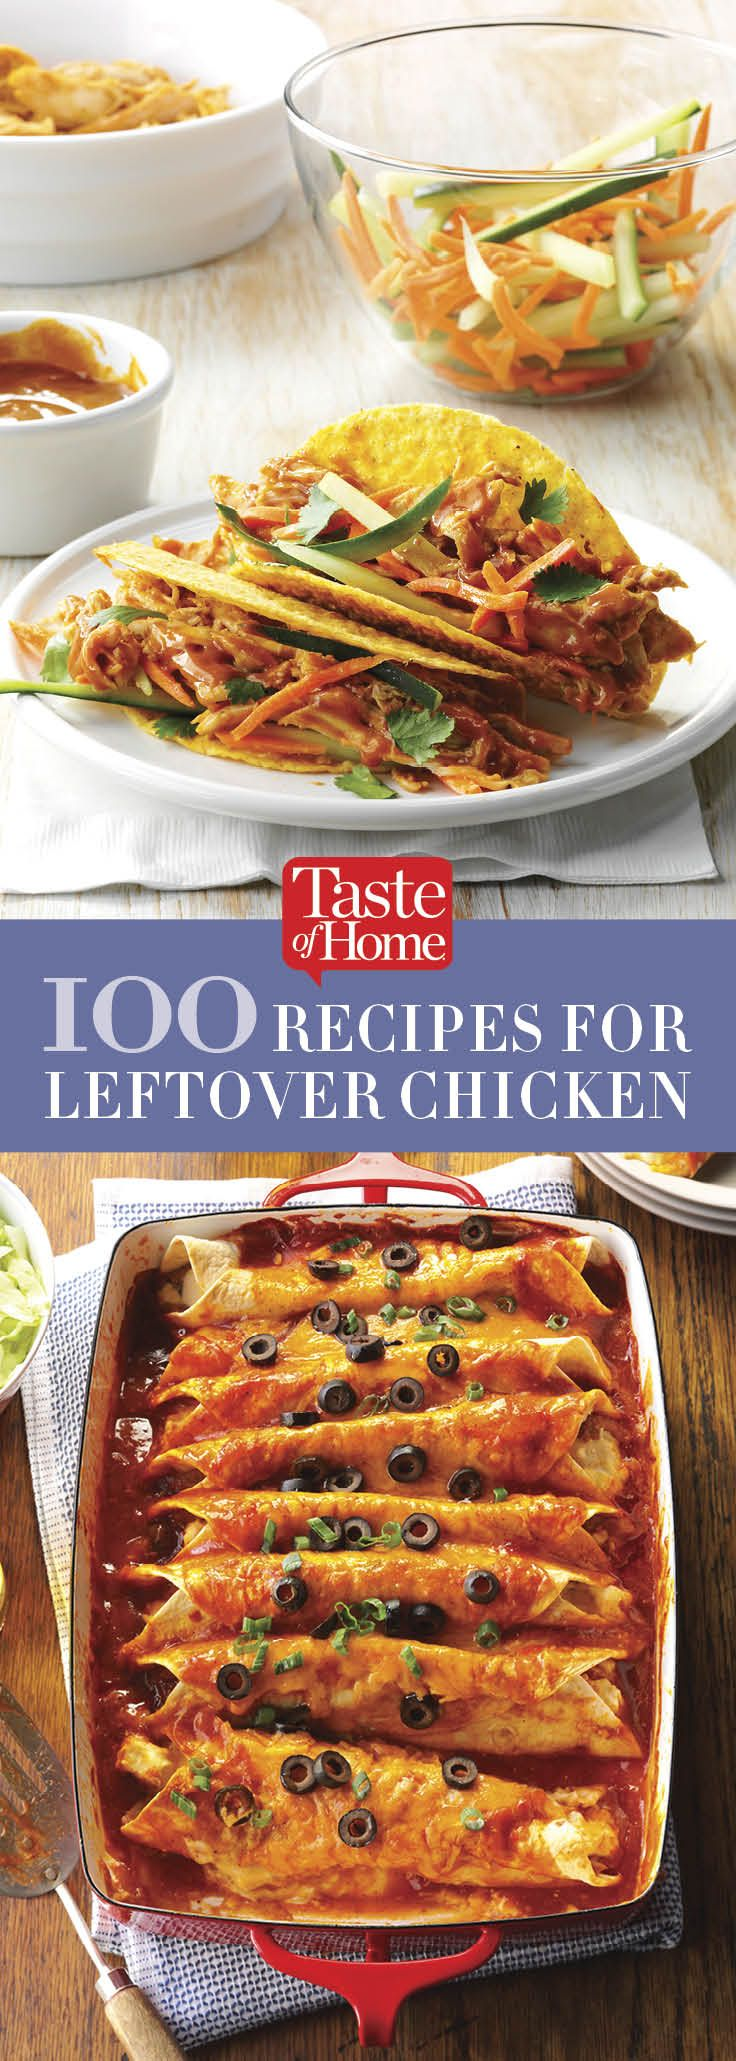 100 Recipes for Leftover Chicken